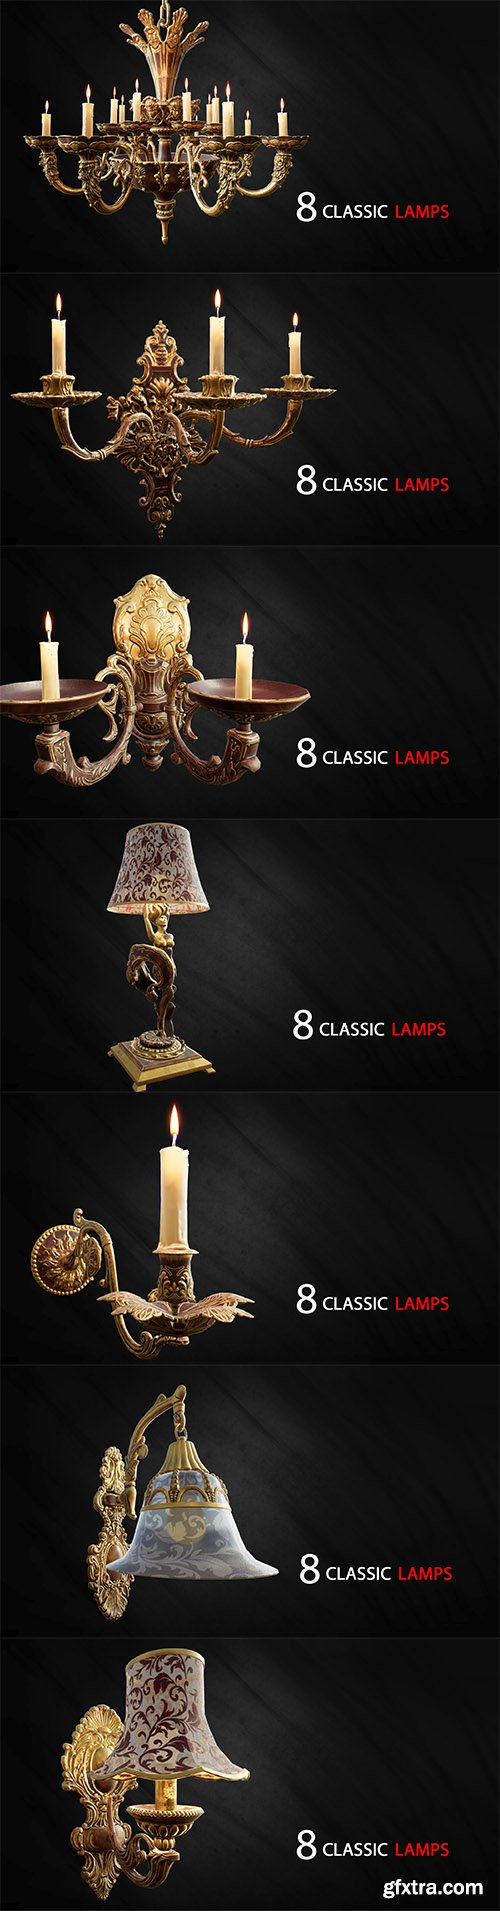 Cgtrader - 8 Classic Lamps Unreal 4 - UE4 Unreal Engine lamp Low-poly 3D model